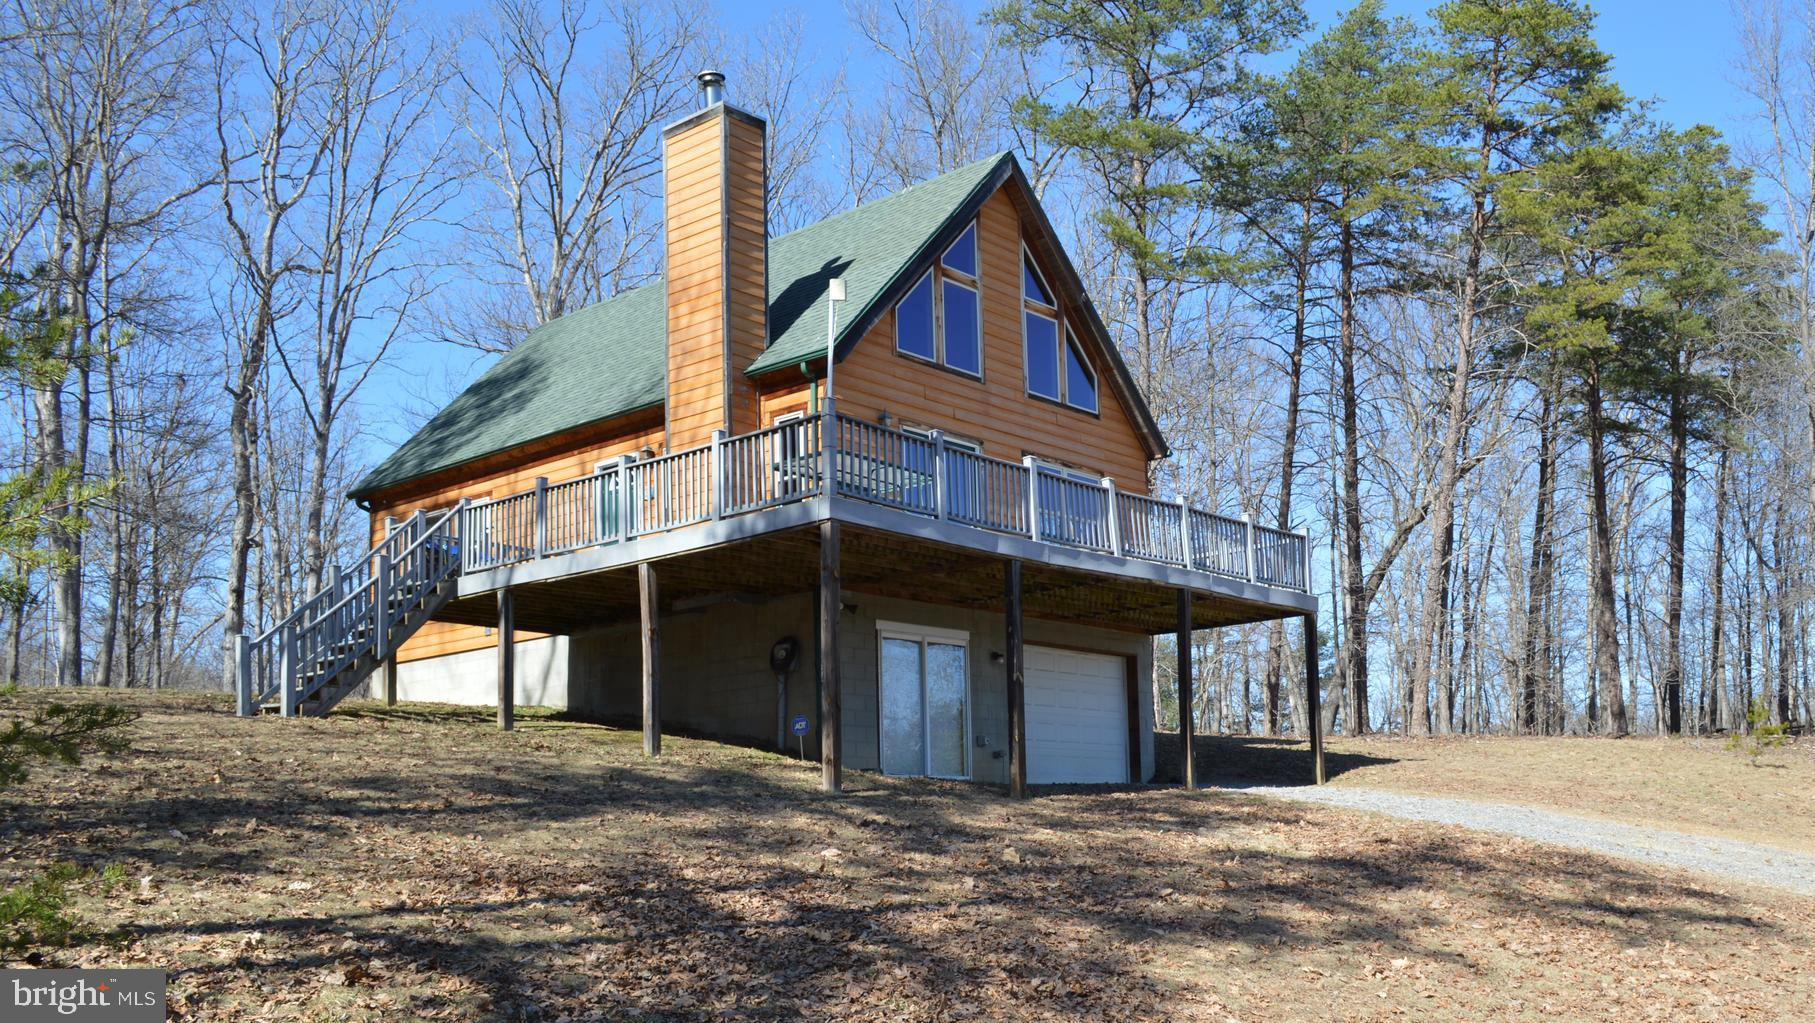 406 CATTAIL HOLLOW RD, FORT ASHBY, WV 26719